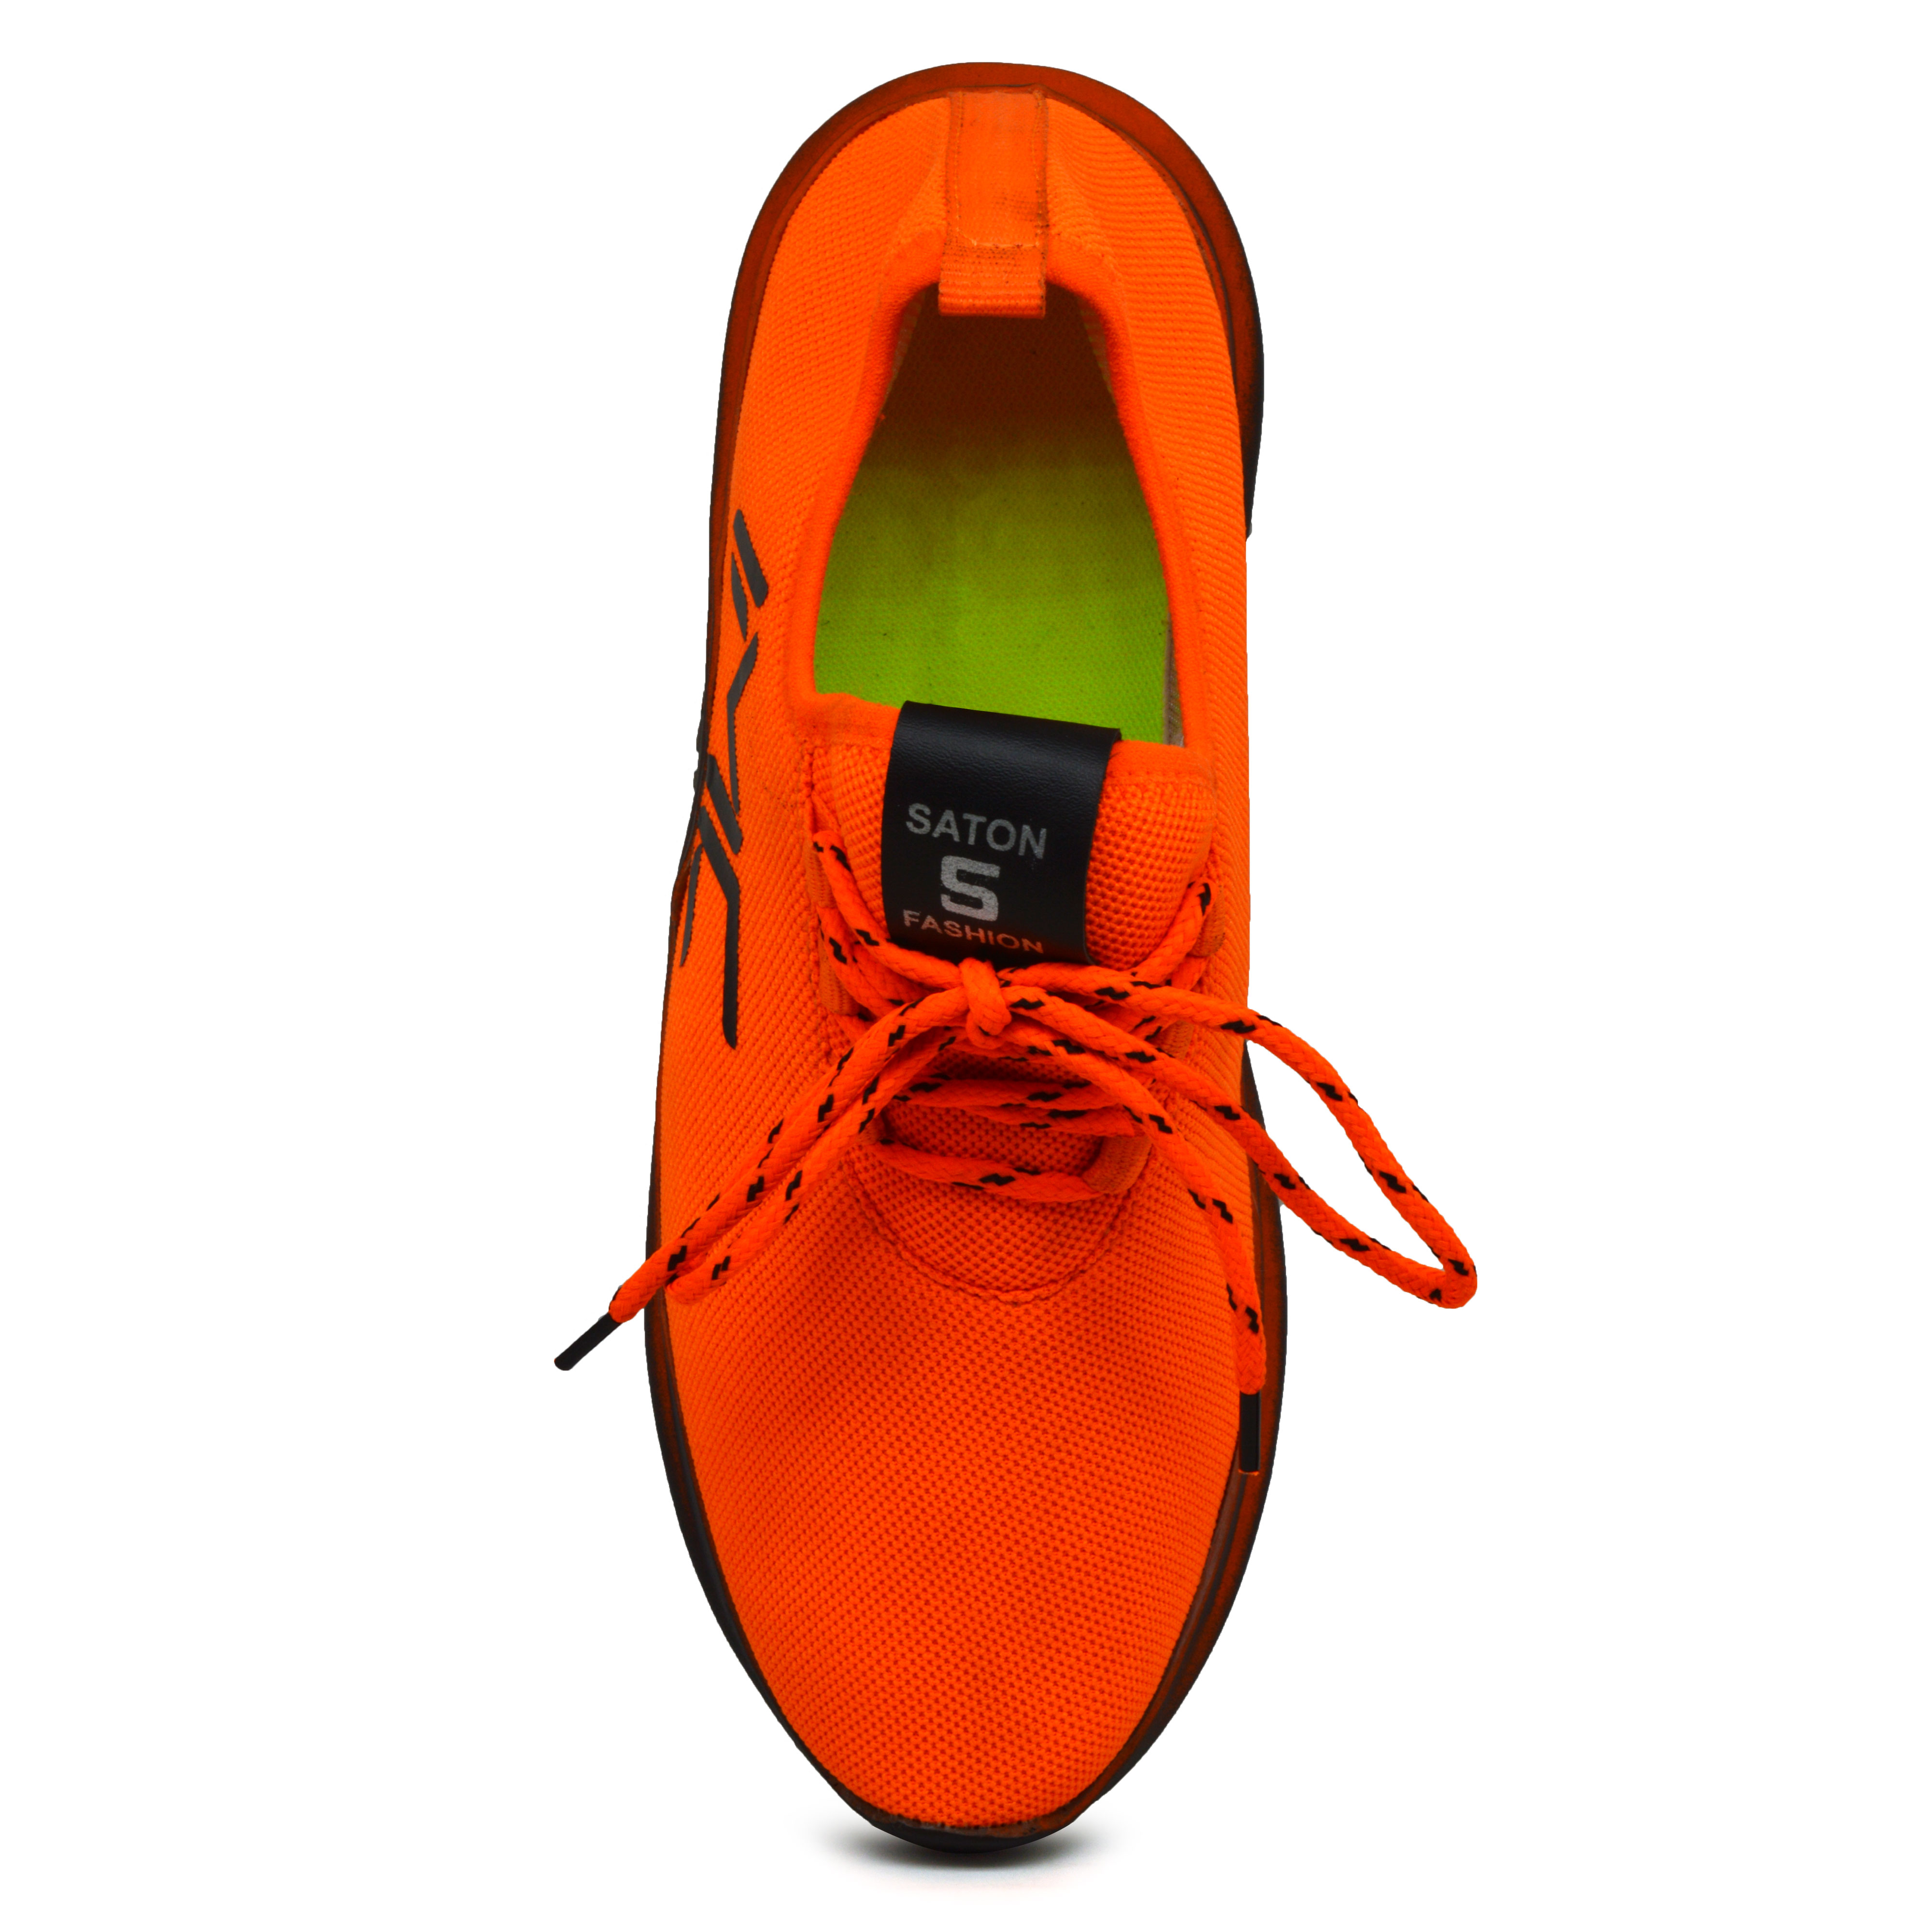 IMCOLUS397A.356_ORANGE RUNNING & EXERCISE SPORT SHOES FOR MEN'S IMCOLUS397A.356_ORG (ORANGE, 7-10, 4 PAIR)